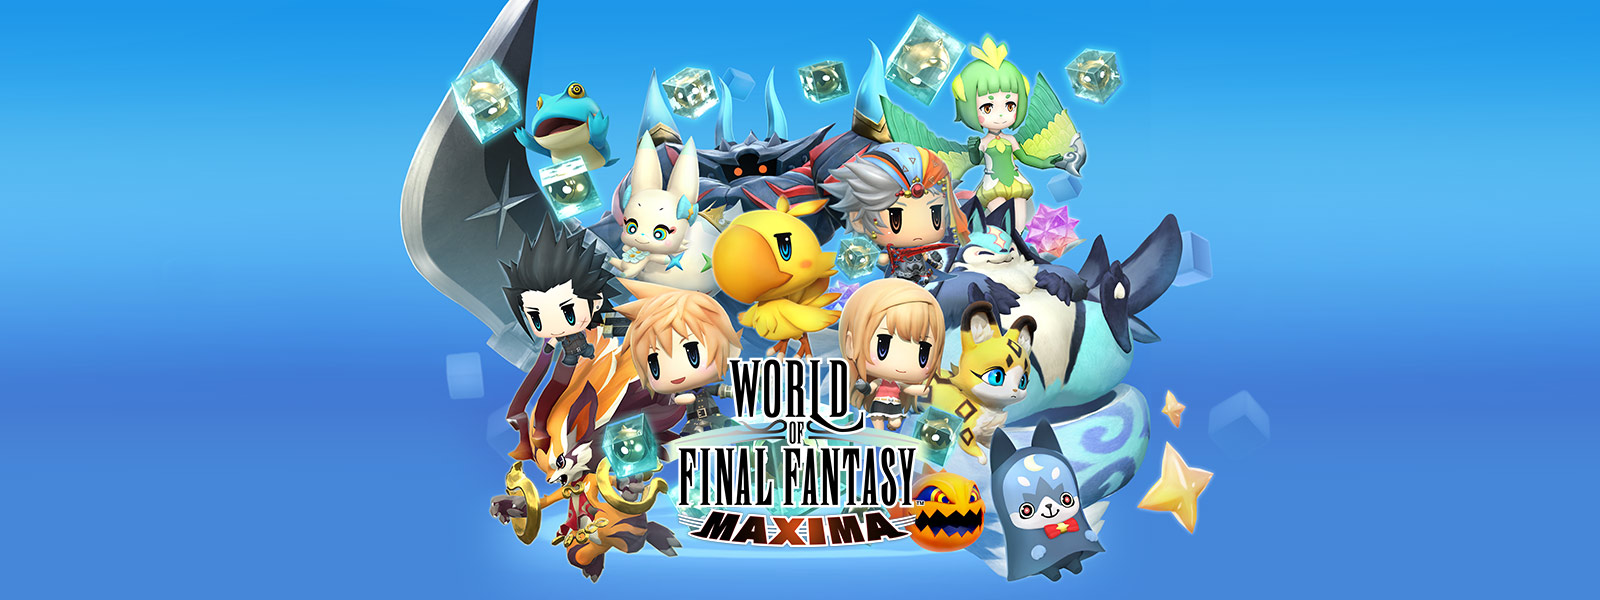 Personagens de WORLD OF FINAL FANTASY MAXIMA saltando do centro da tela